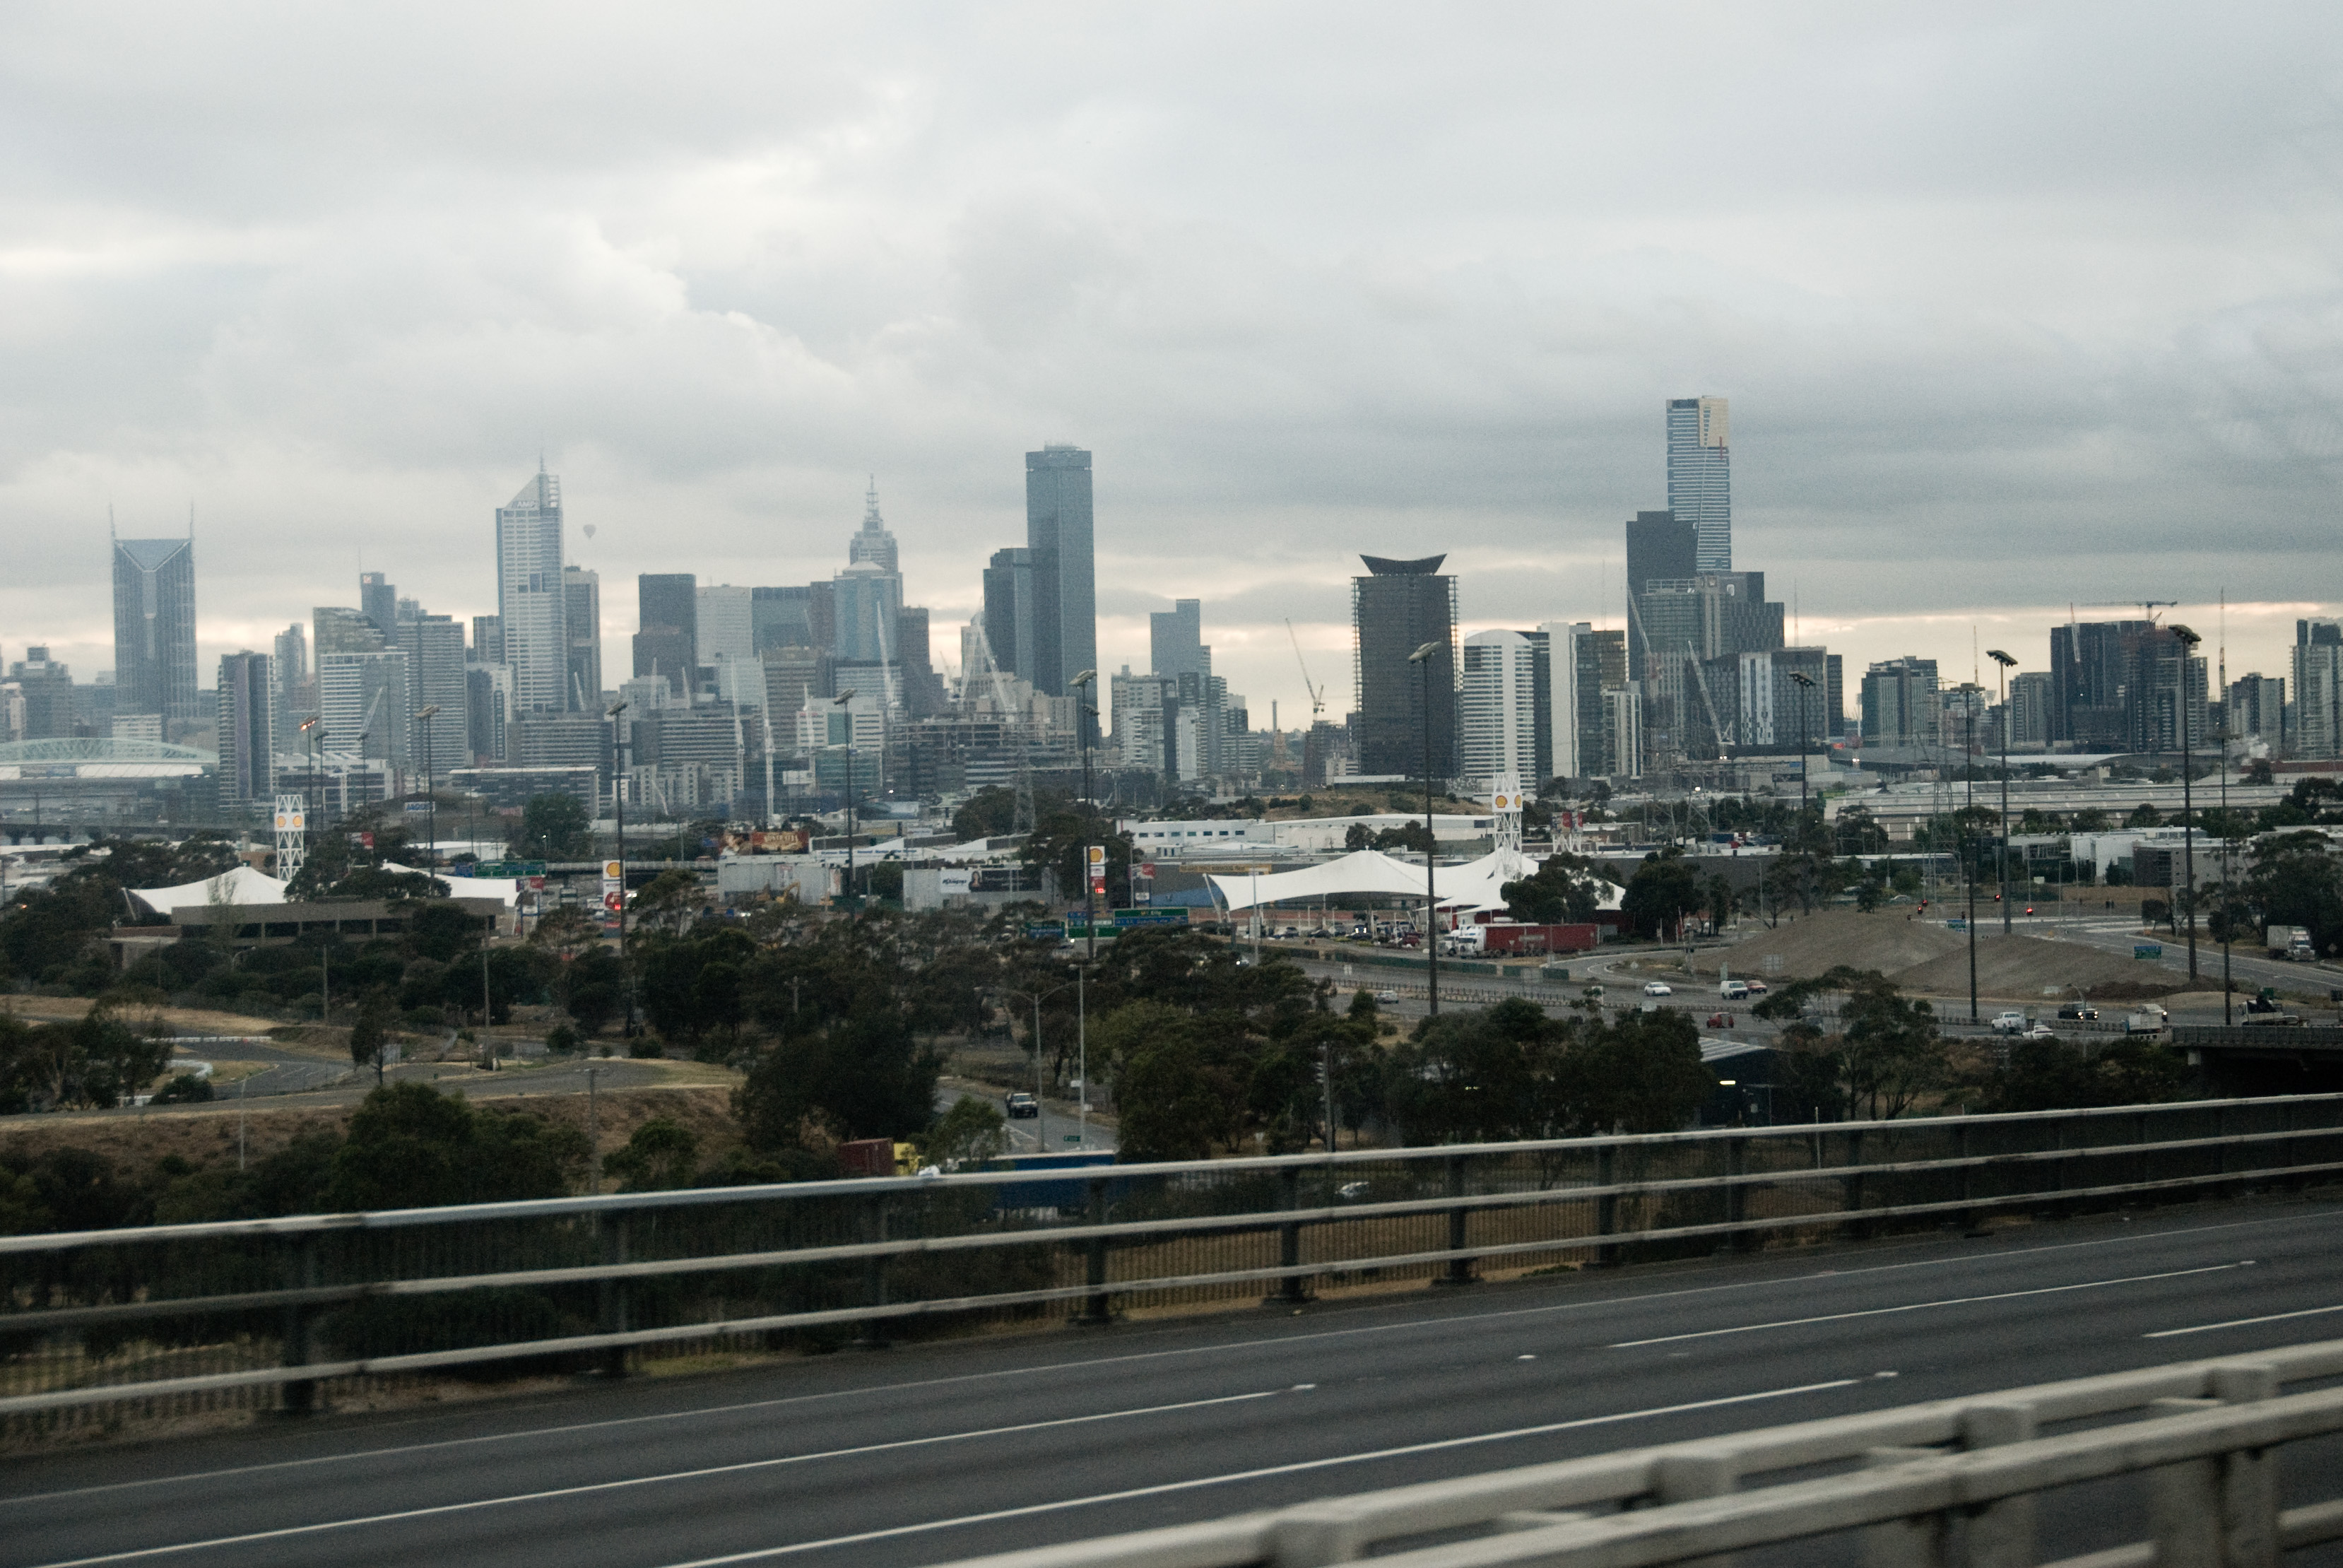 Google what is today's date in Melbourne